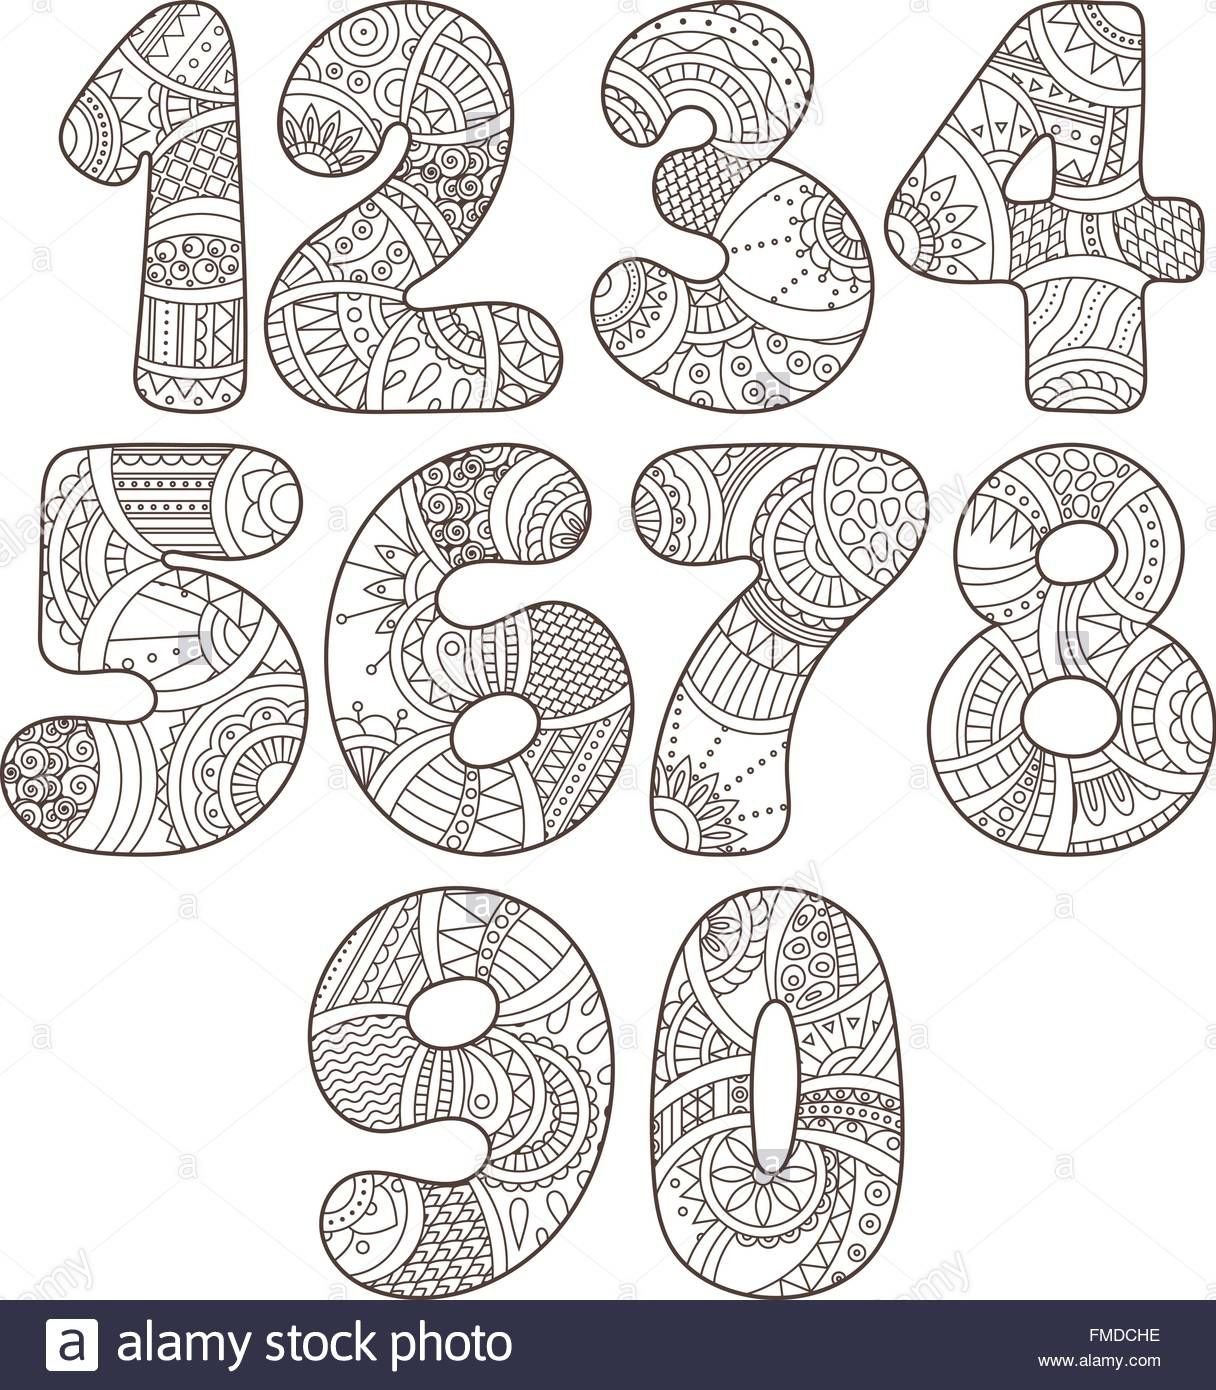 Pin By Christina Flores On Coloring Coloring Pages Free Printable Coloring Pages Printable Coloring Pages